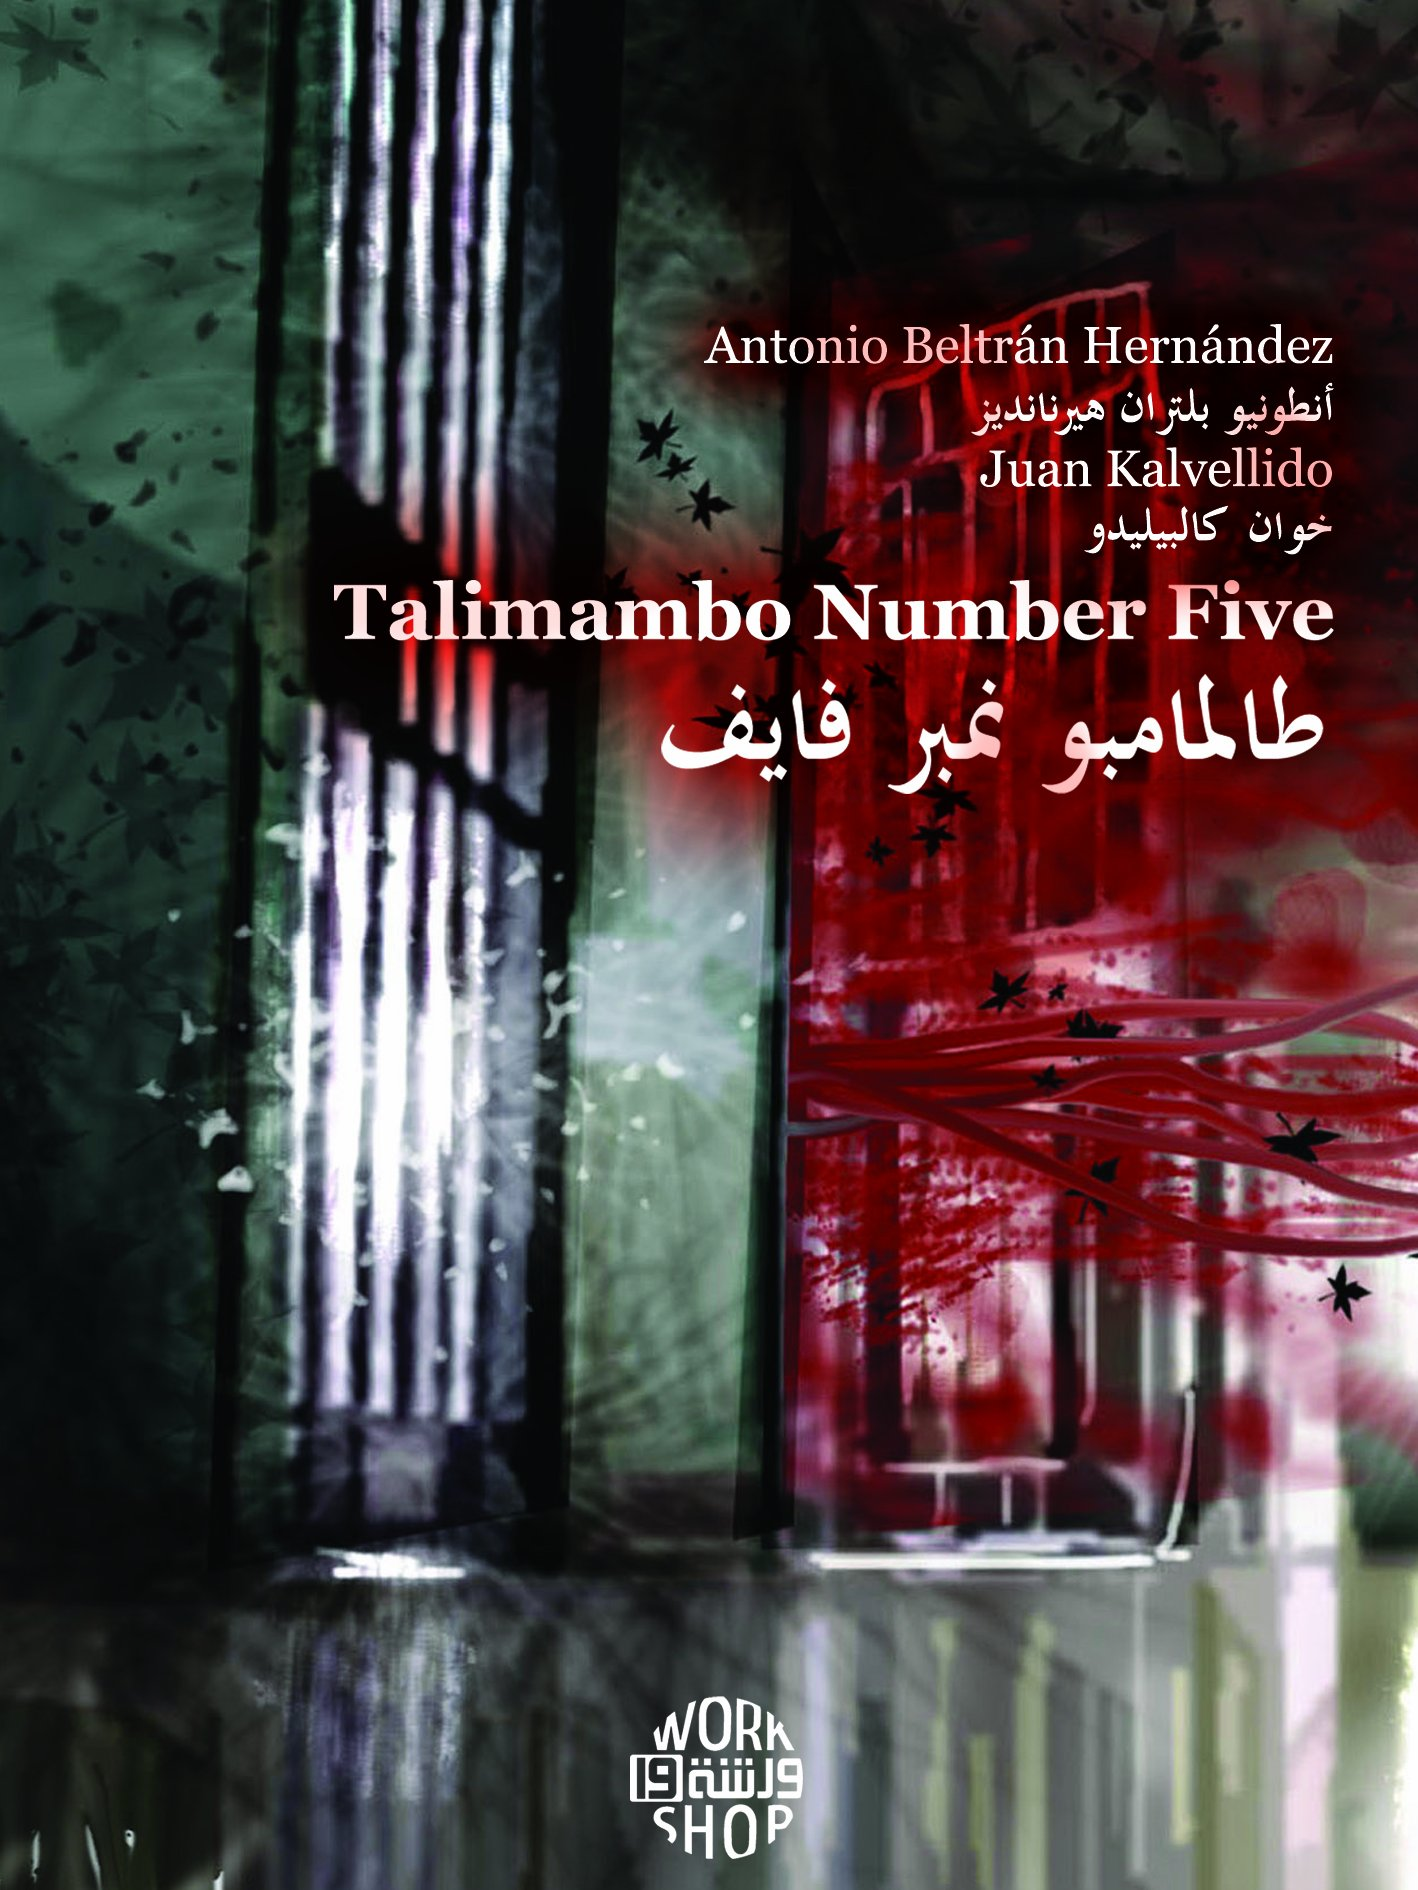 Talimambo Number Five